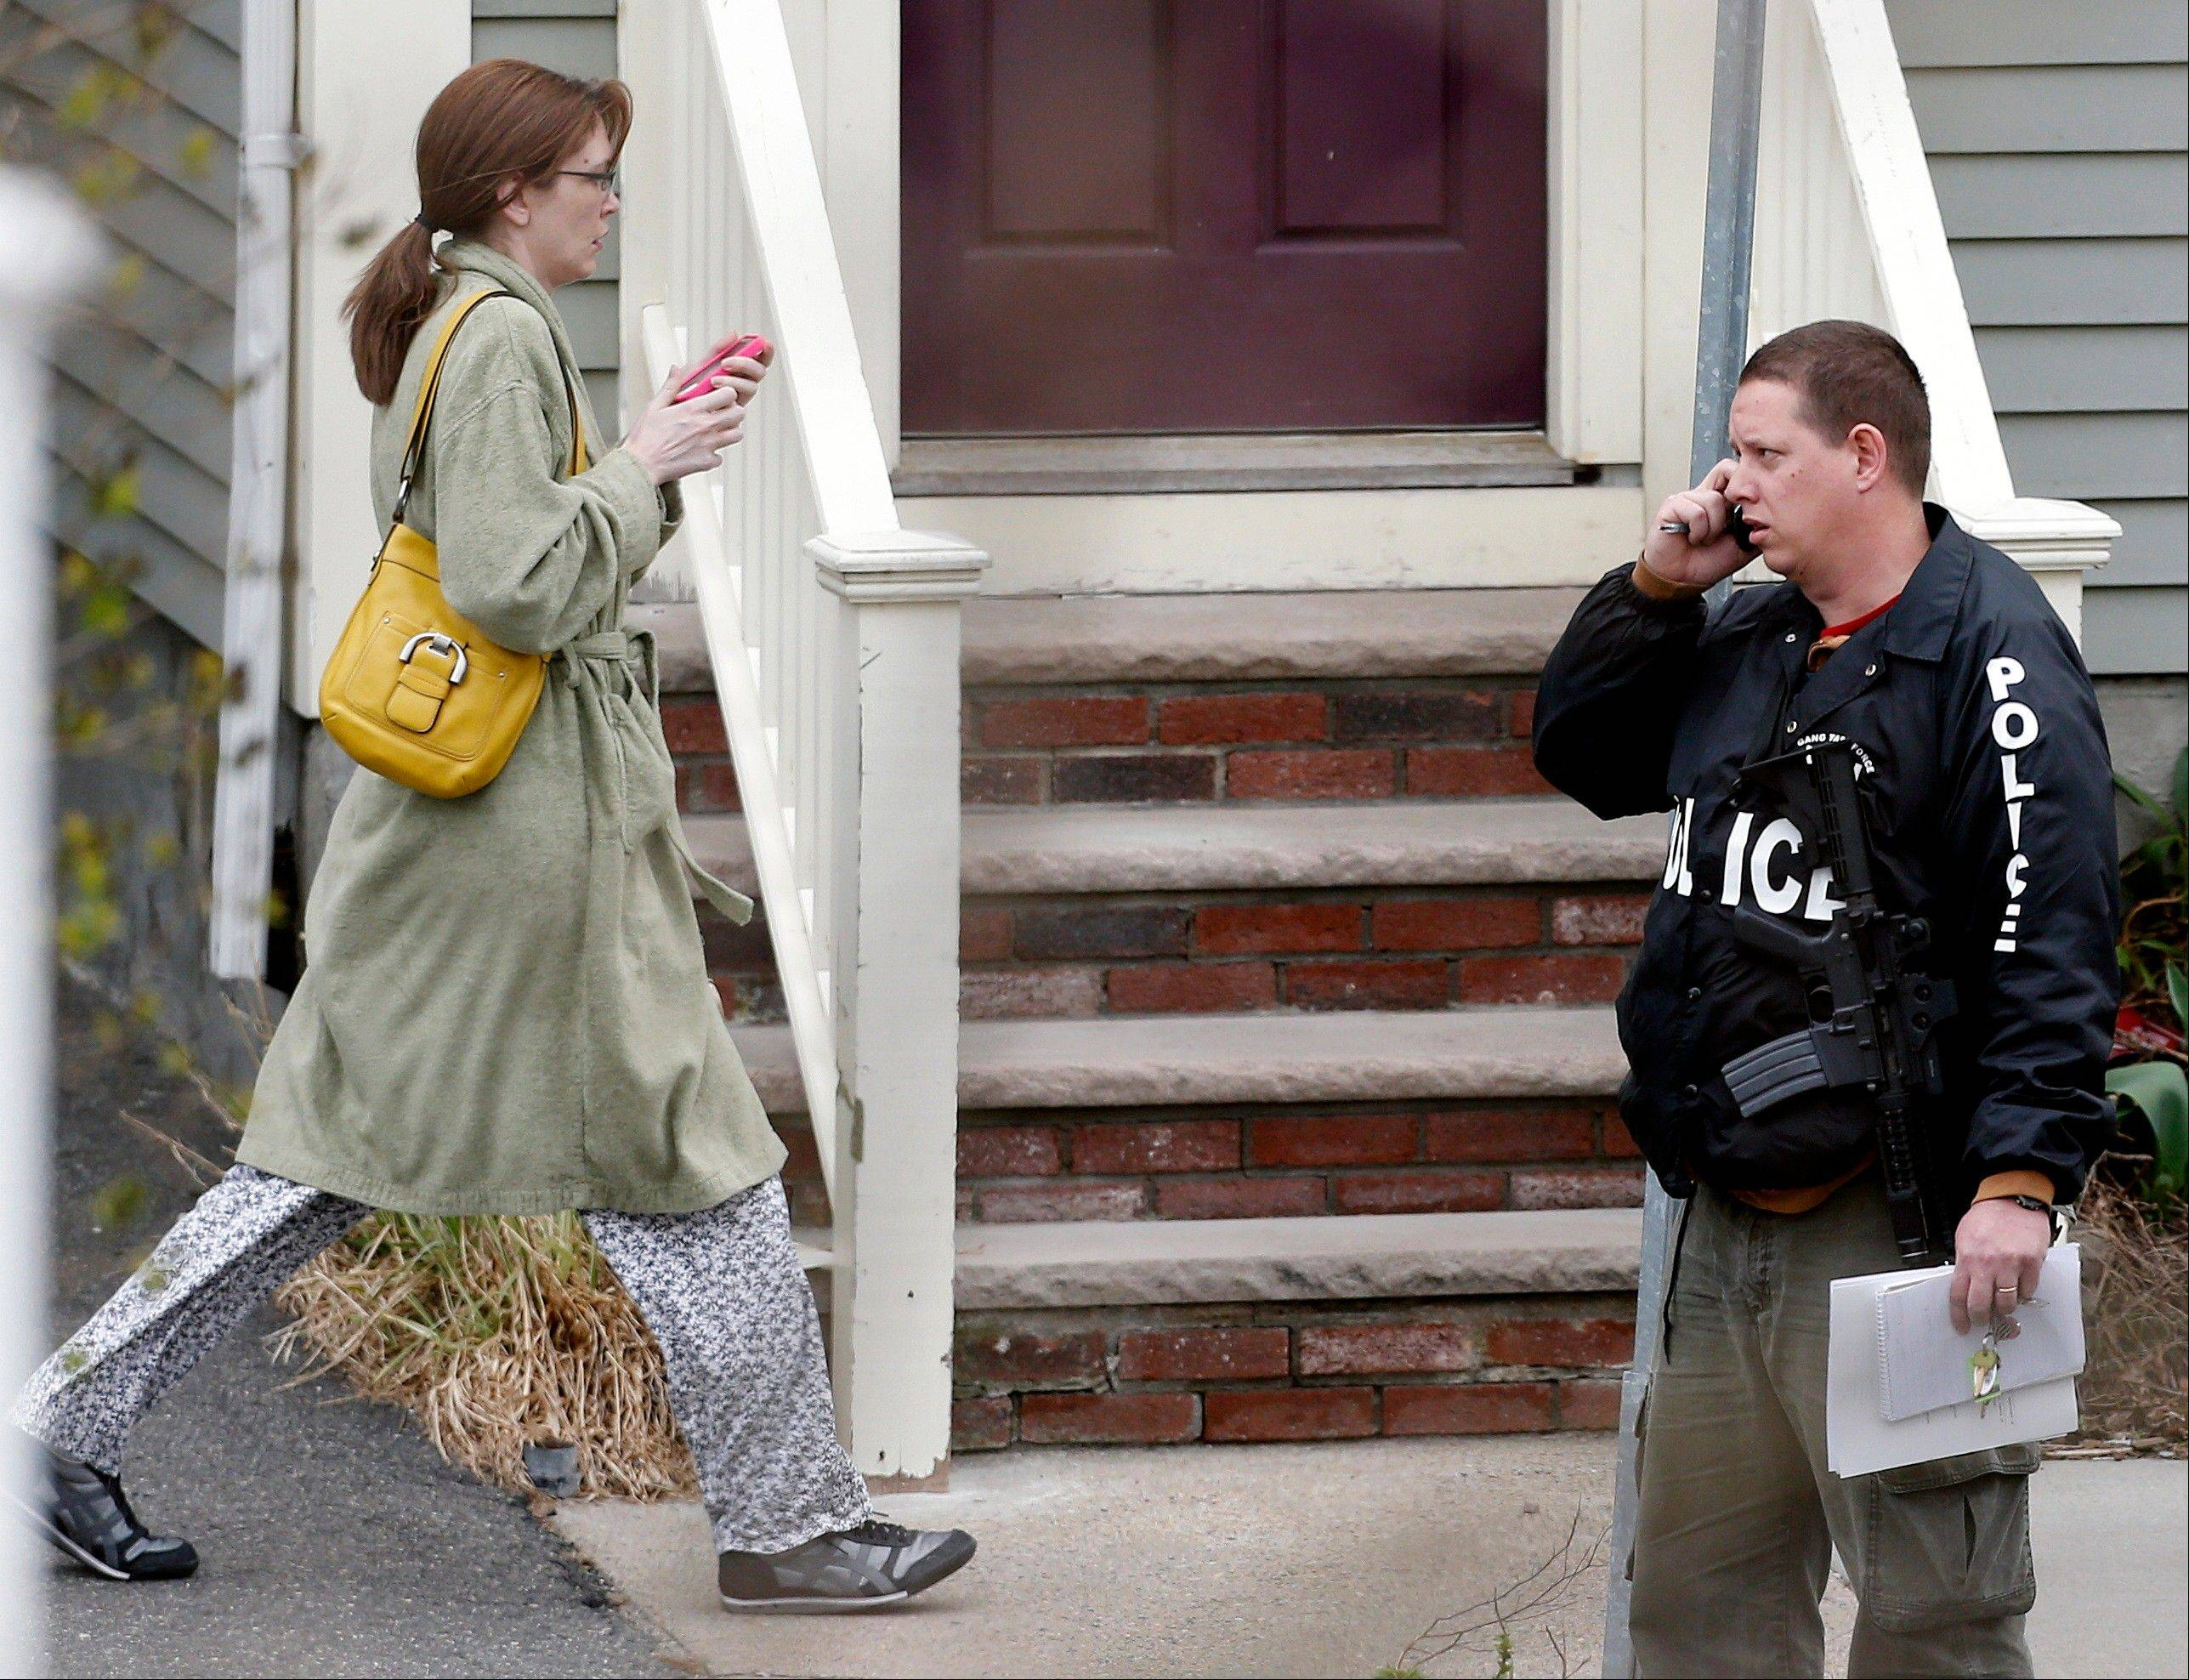 A woman heads away from a building in Cambridge, Mass., after being evacuated by police from her home next door, Friday, April 19, 2013. Two suspects in the Boston Marathon bombing killed an MIT police officer, injured a transit officer in a firefight and threw explosive devices at police during a getaway attempt in a long night of violence that left one of them dead and another still at large Friday, authorities said as the manhunt intensified for a young man described as a dangerous terrorist.